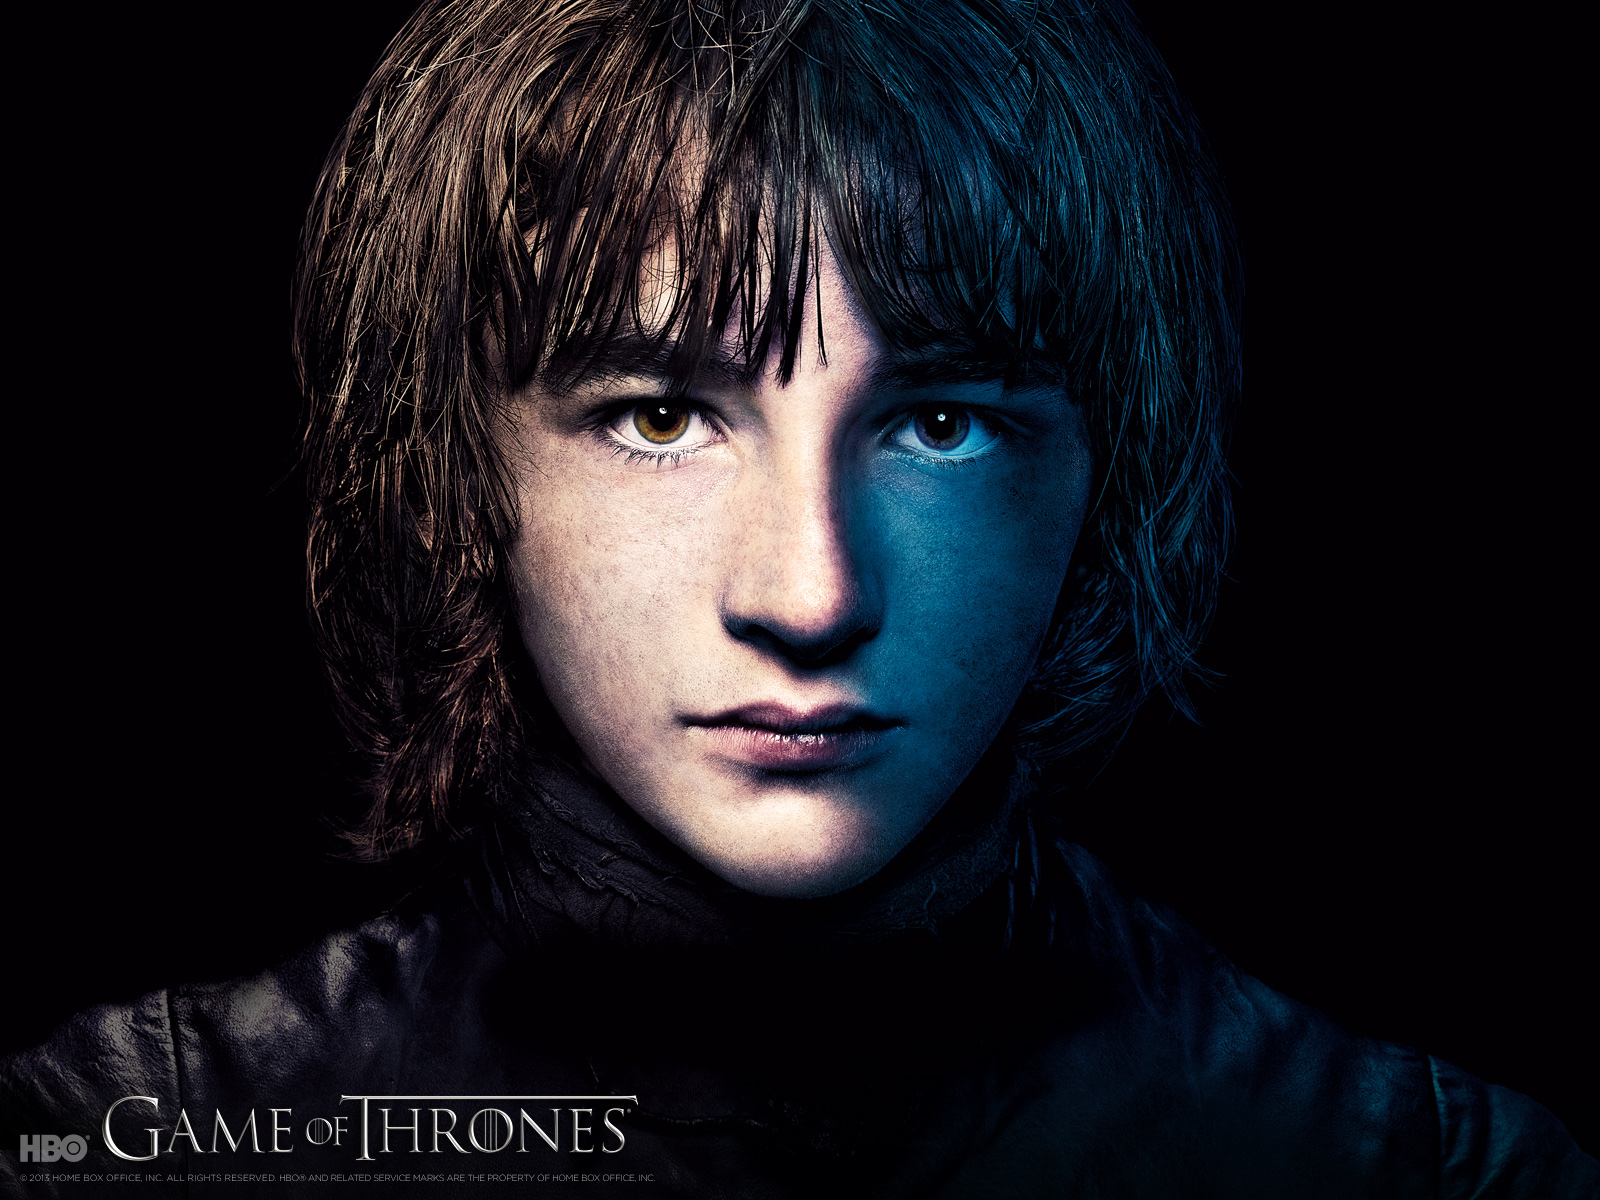 to 03 31 13 with desktop wallpapers for season 3 of game of thrones 1600x1200